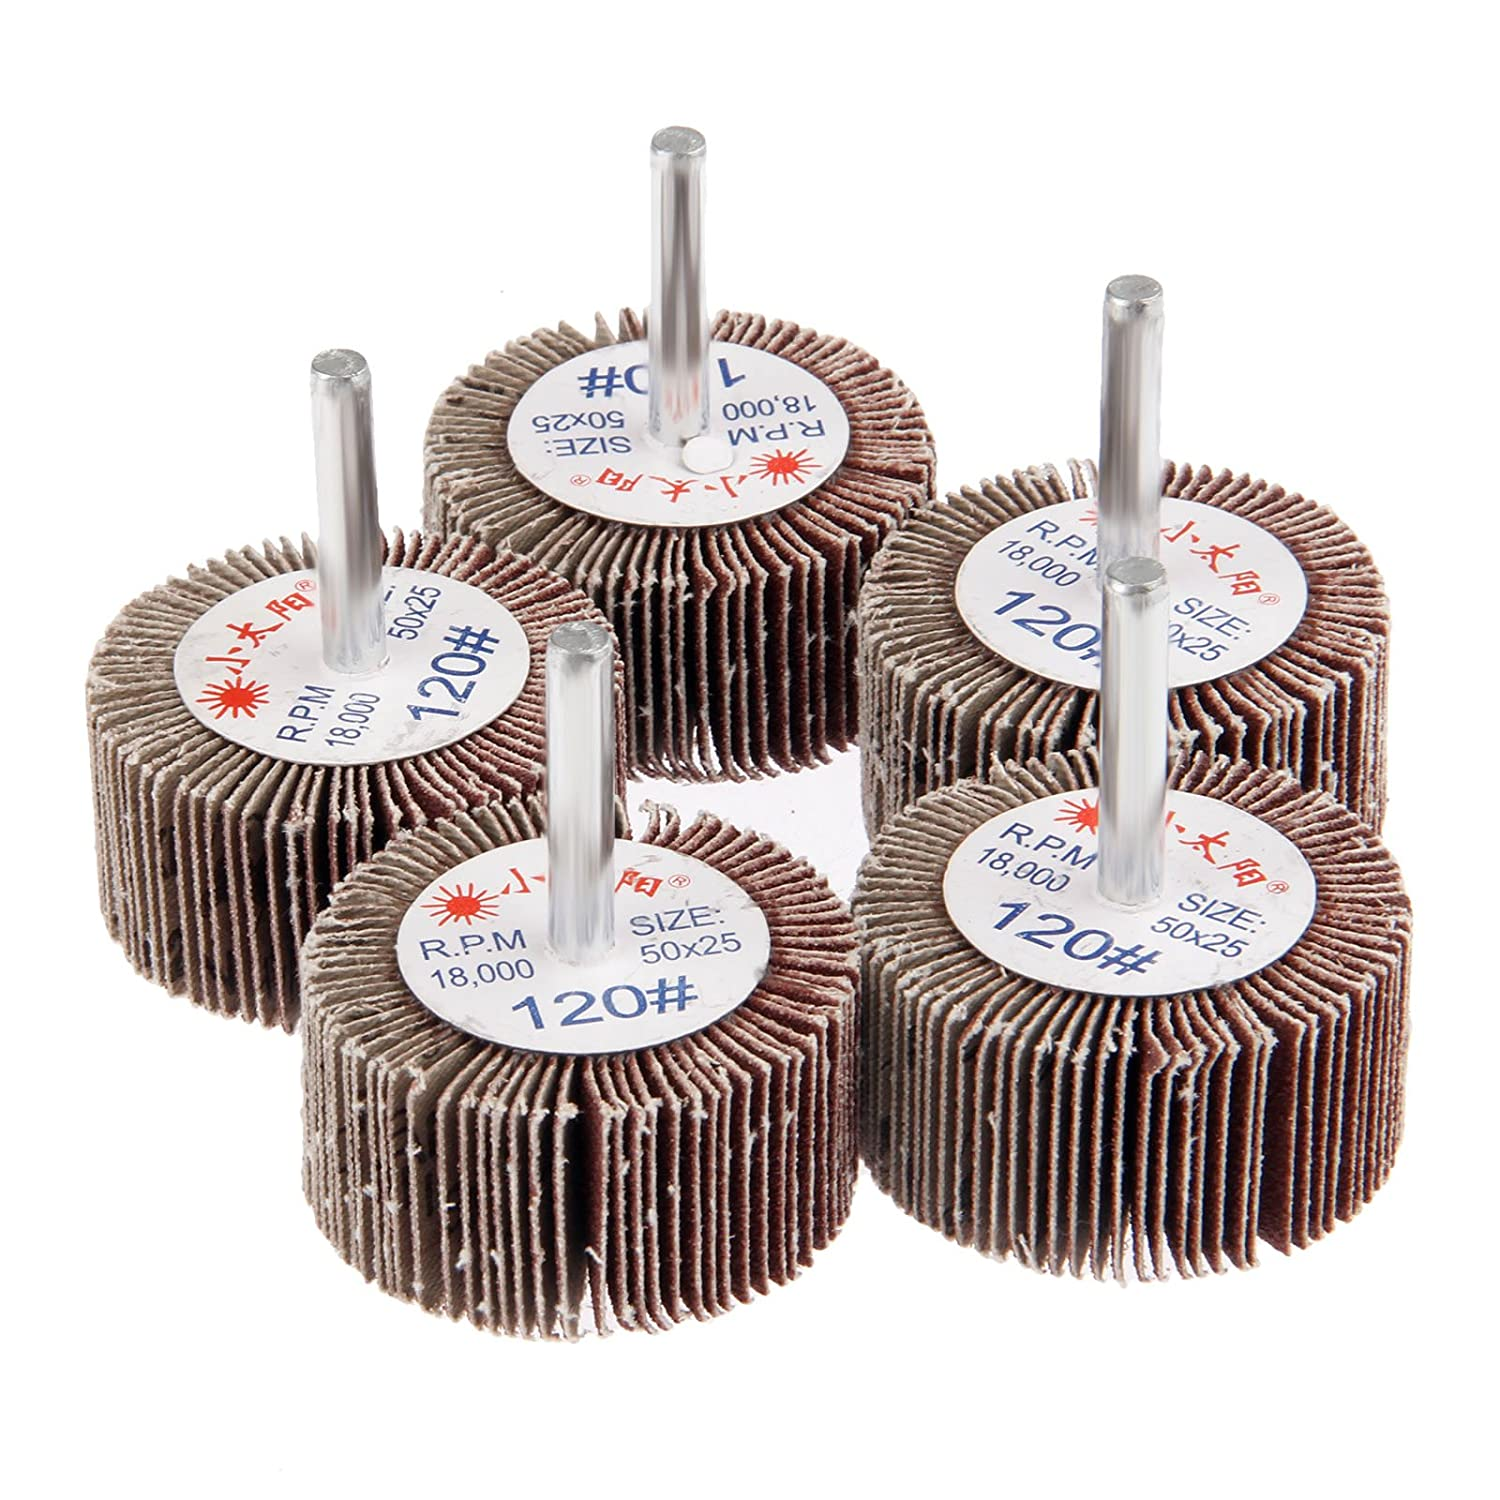 Dophee 5Pcs 120# Grit 50x25x6mm Sanding Grinding Aluminum Oxide Flap Wheels For Rotary Tools